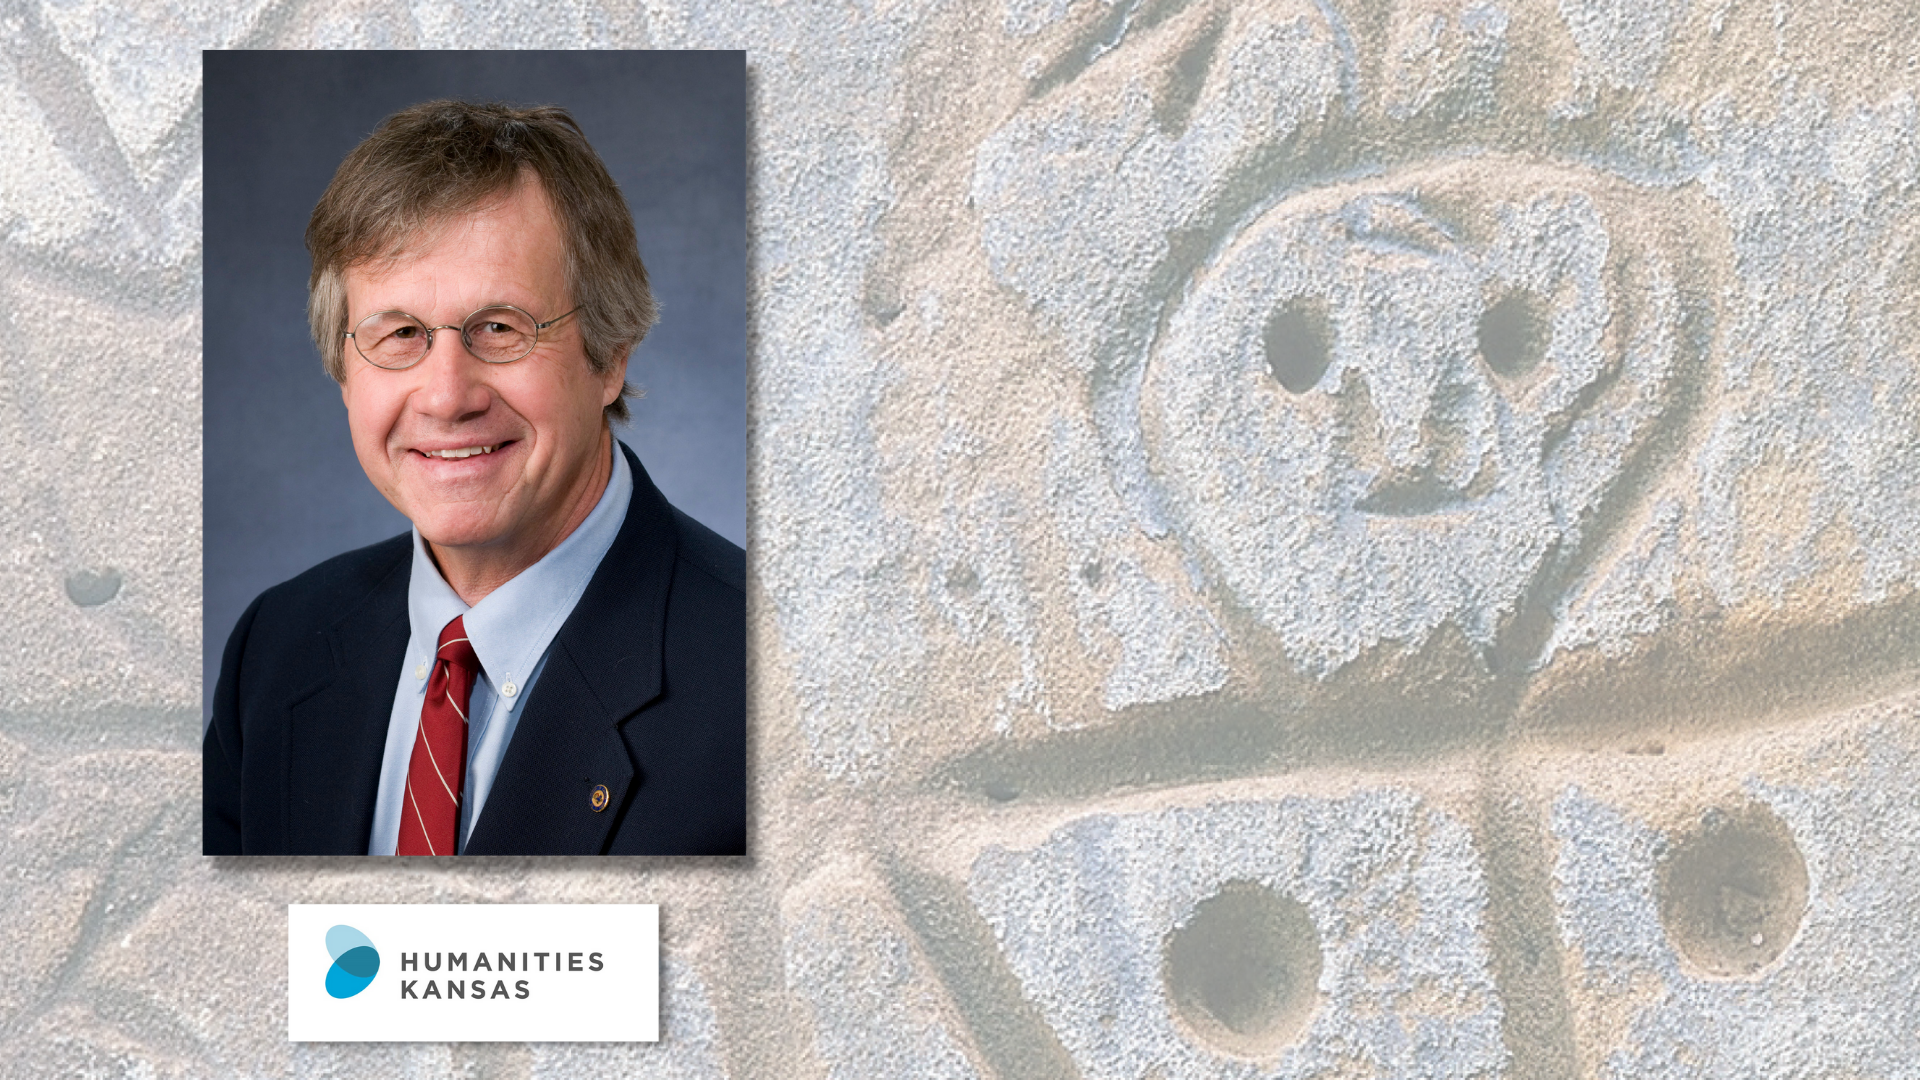 The background includes a photo of part of a petroglyph from the Kansas Smoky Hills. In the foreground is a portrait of Rex Buchanan. He is wearing a suit and tie. The Humanities Kansas logo is also featured.